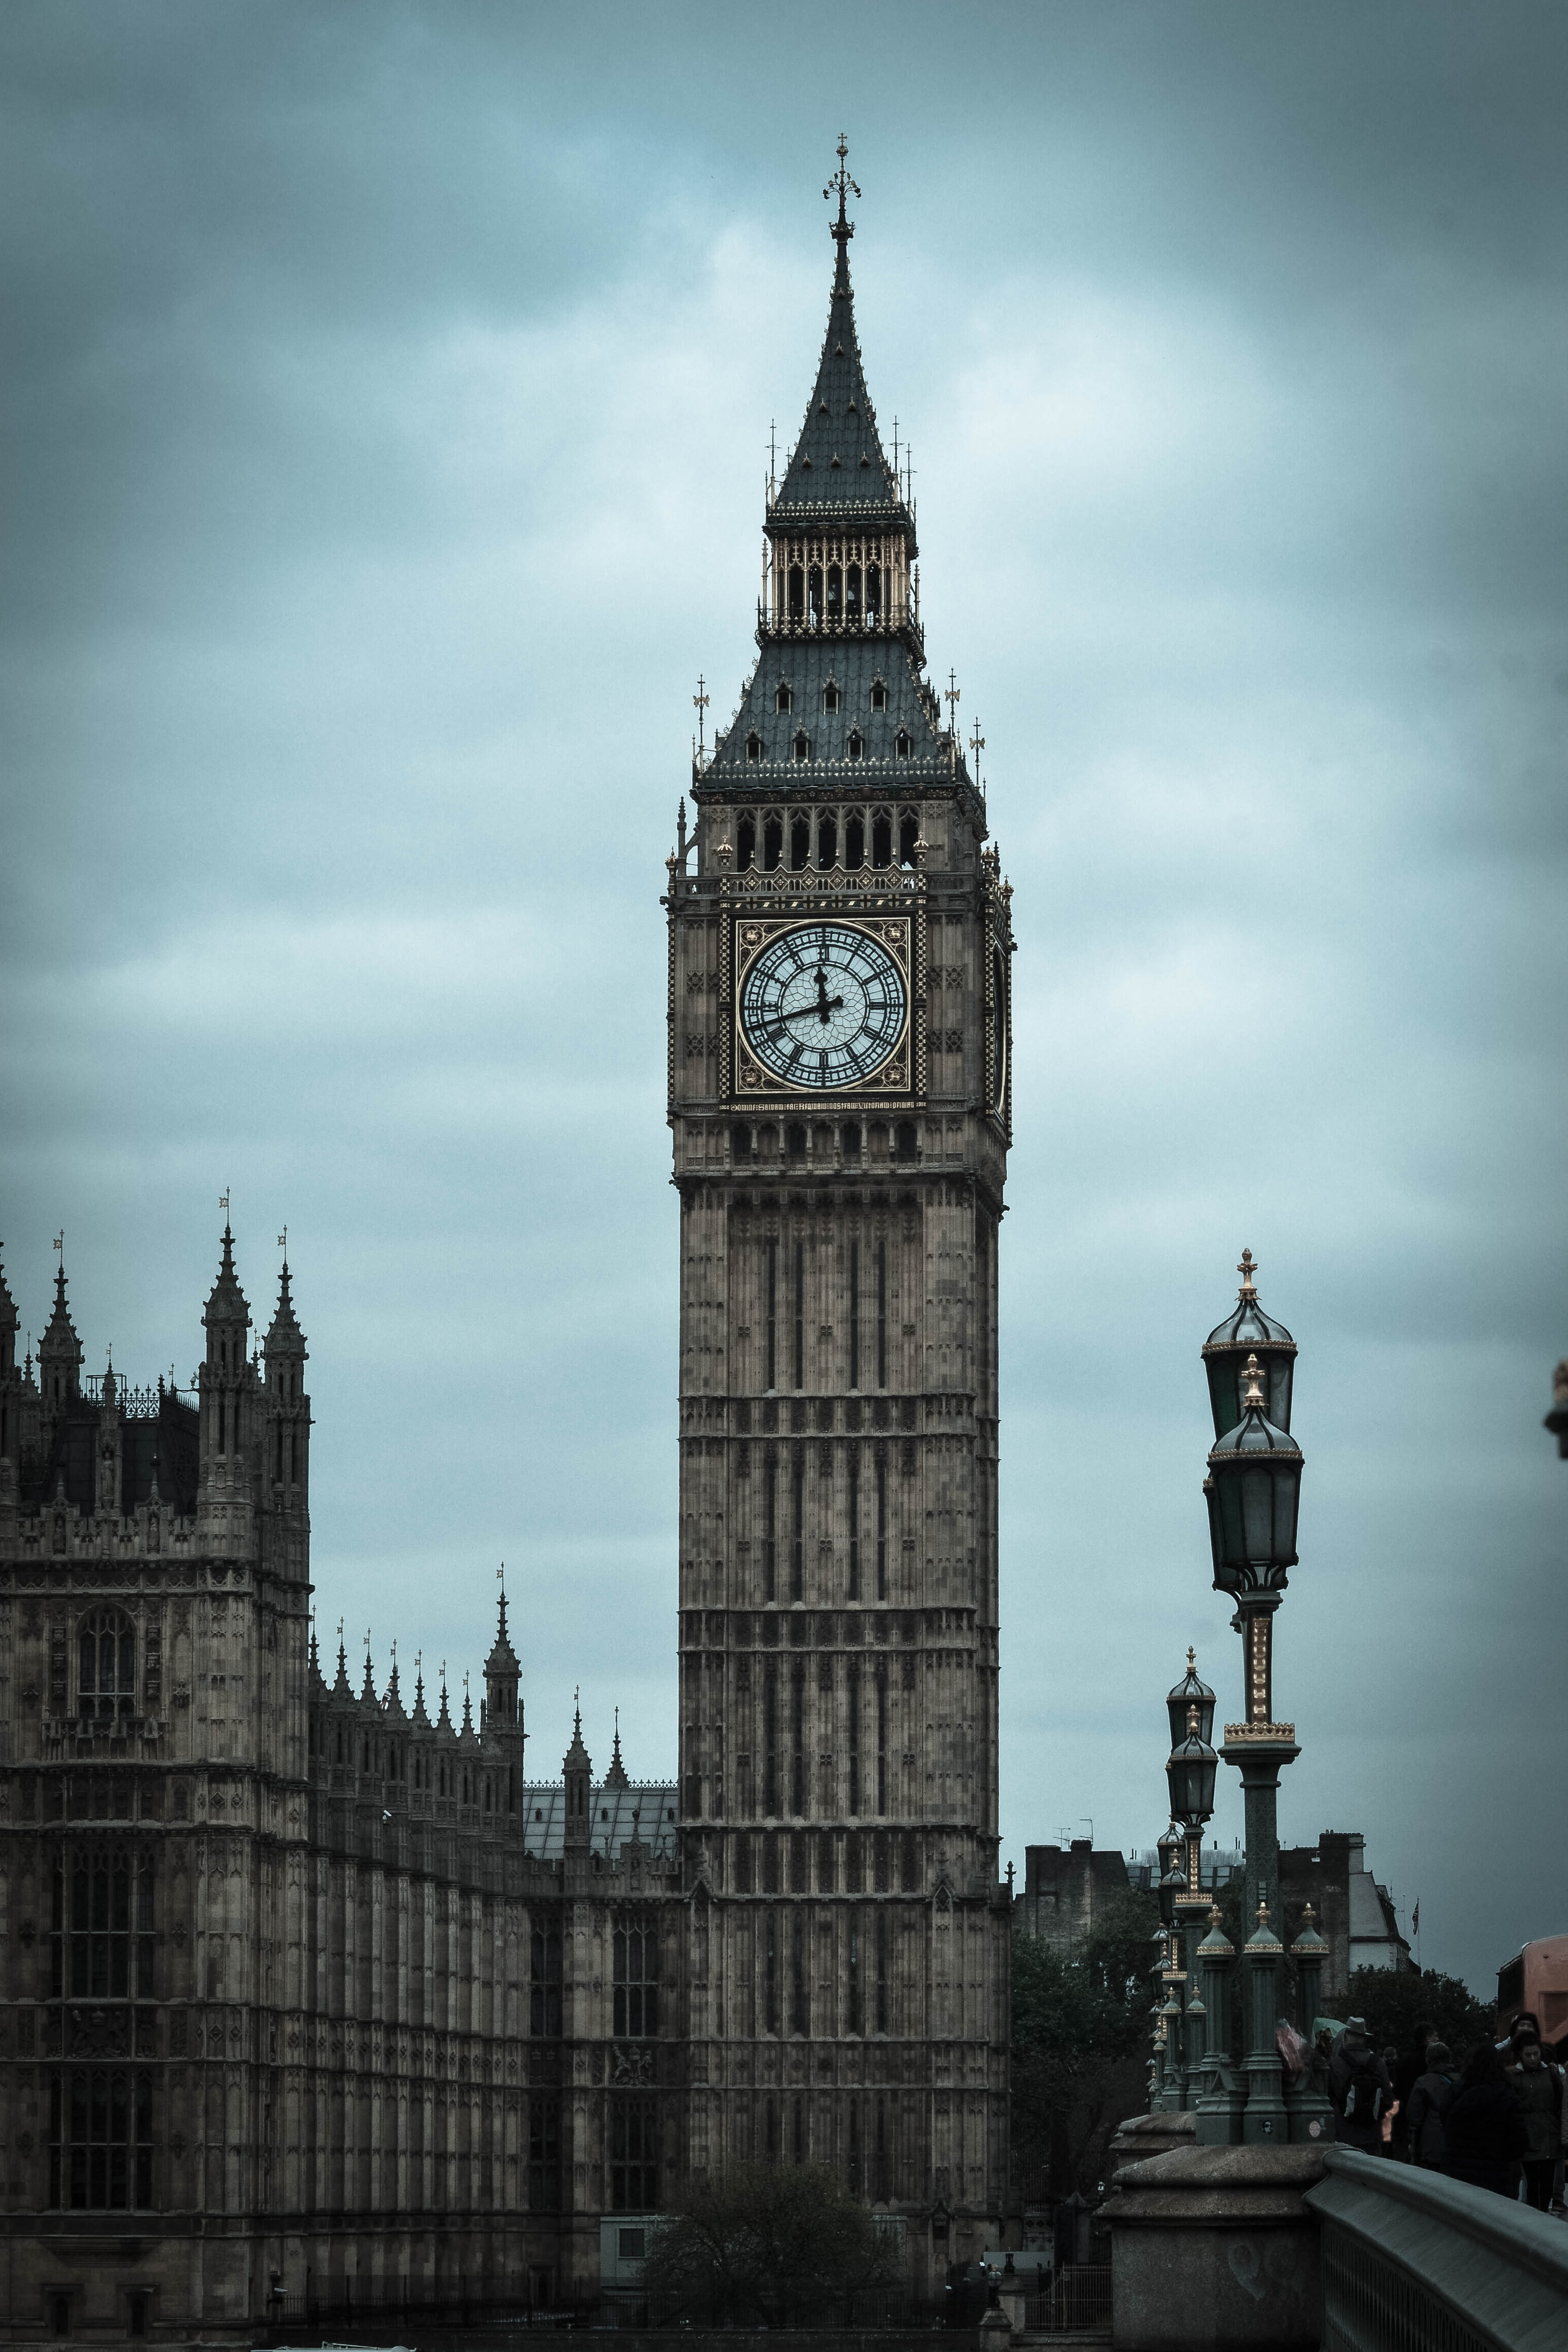 photography of Big Ben, London